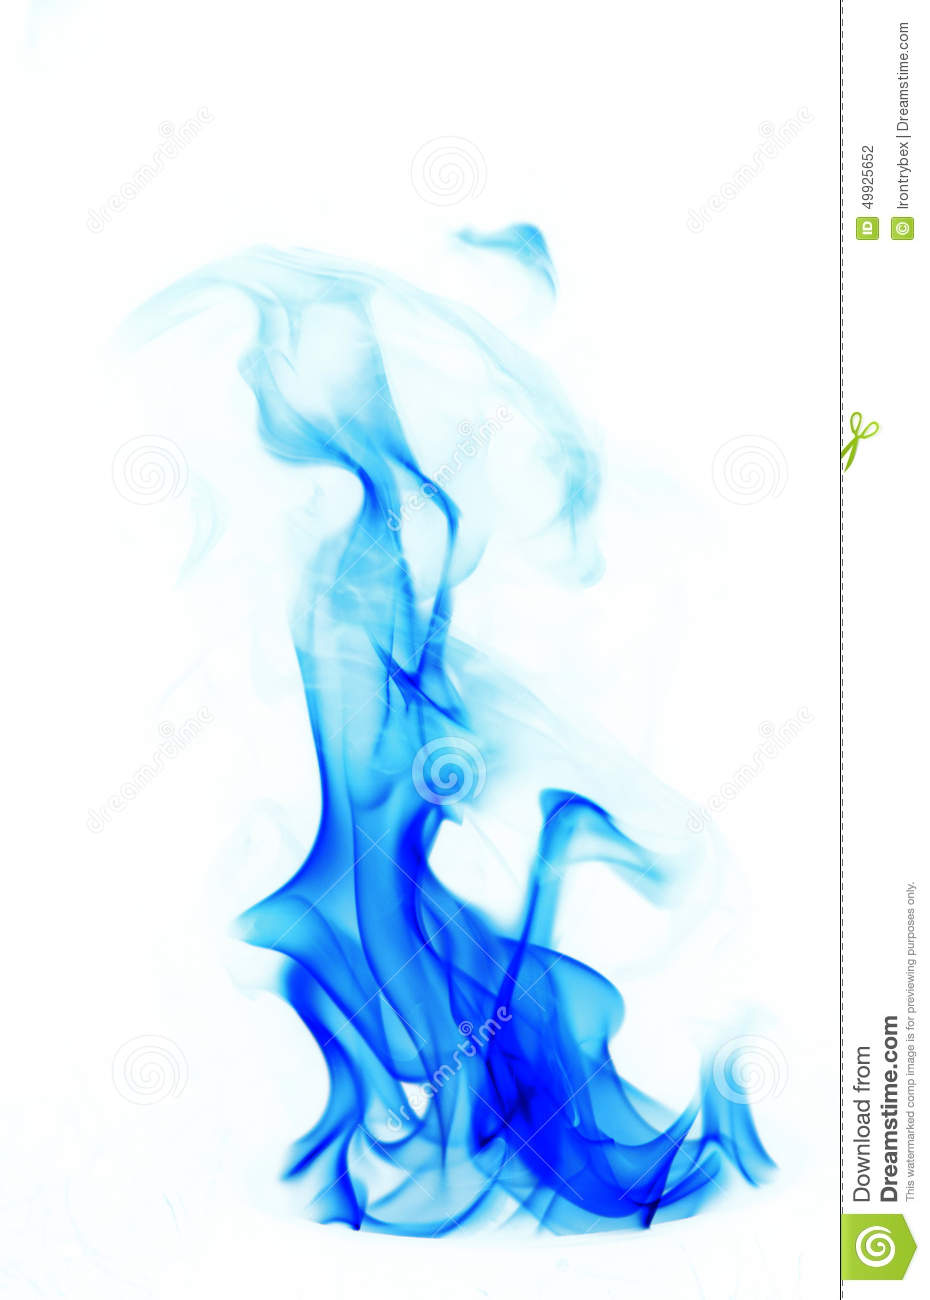 Blue Fire Flames Stock Photo - Image: 49925652